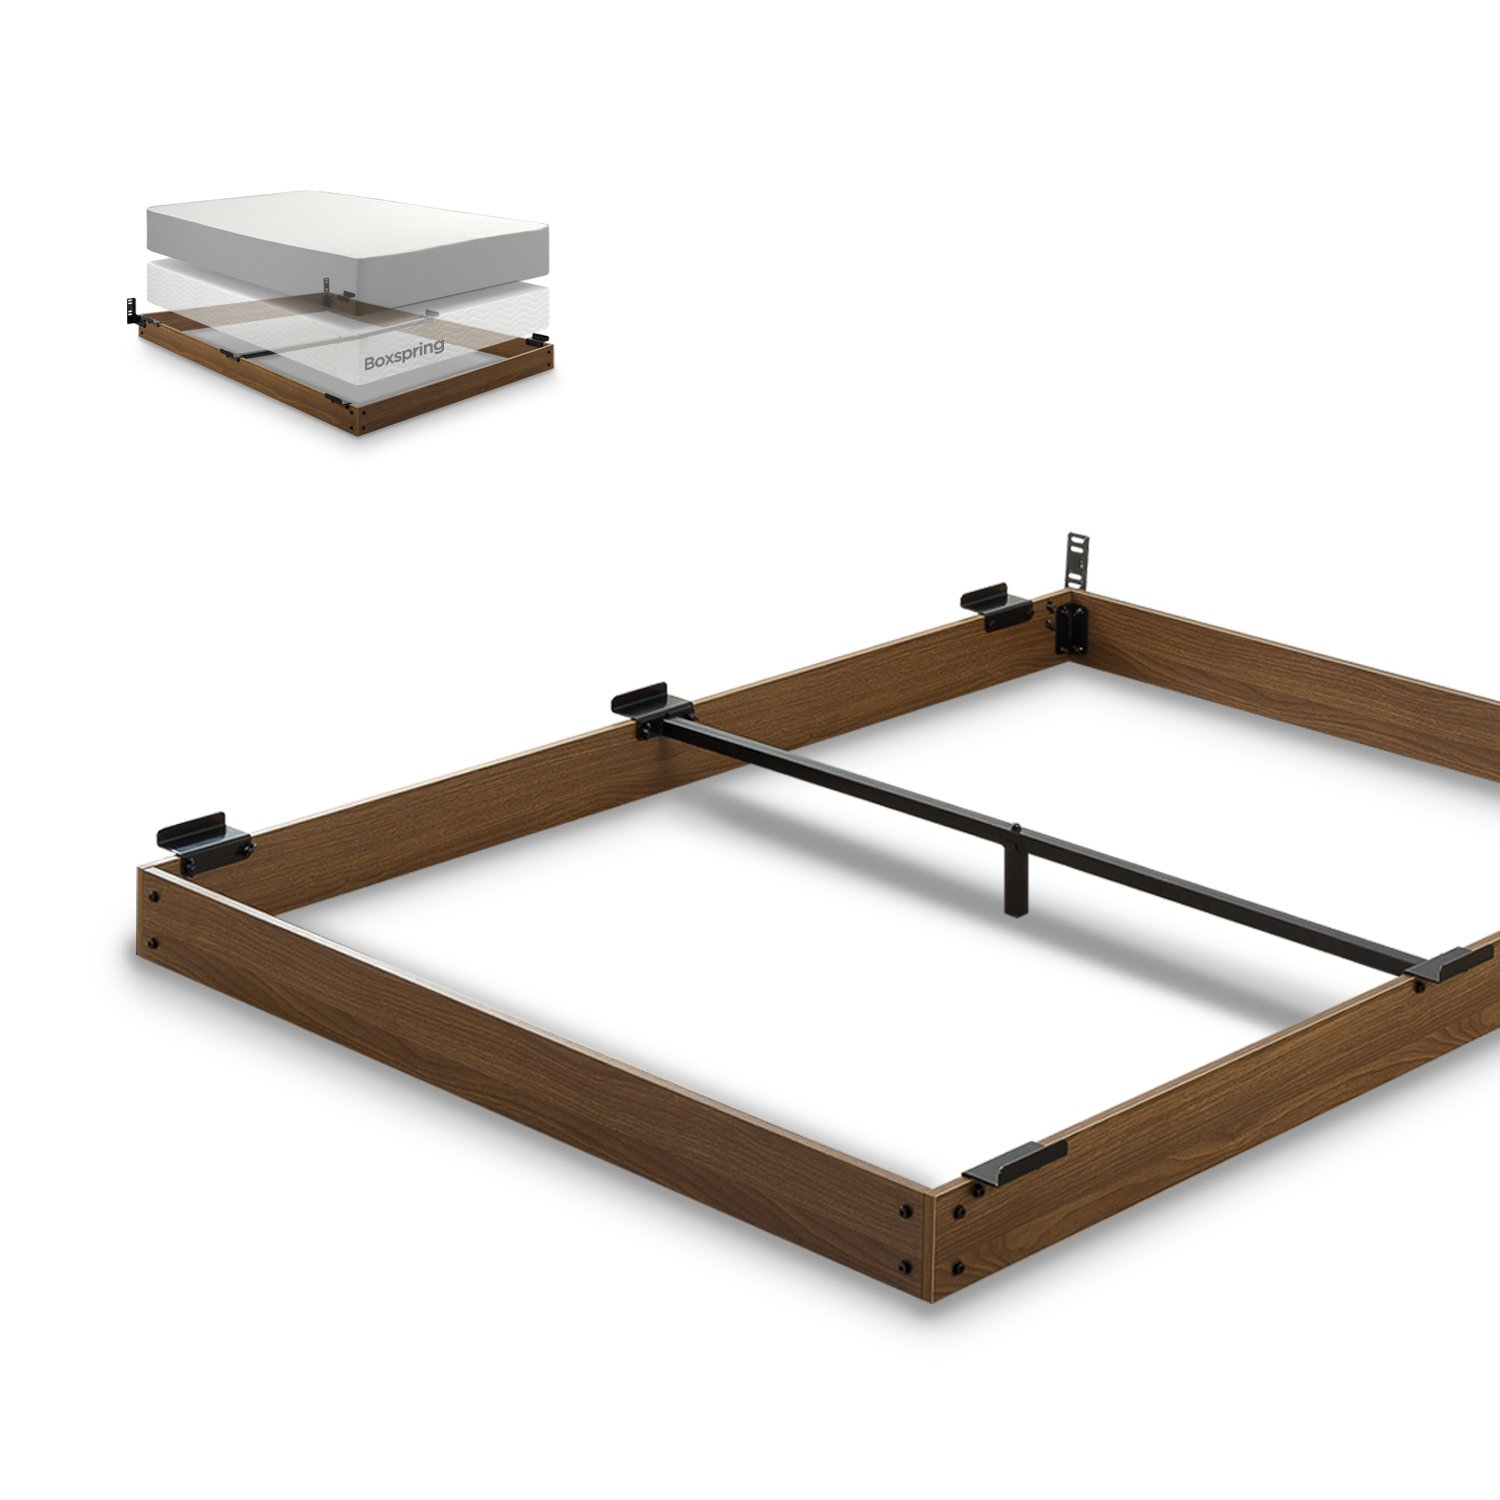 Zinus 5 Inch Wood Bed Frame for Box Spring & Mattress Set, Keep Pets From Beneath Your Bed, Twin by Zinus